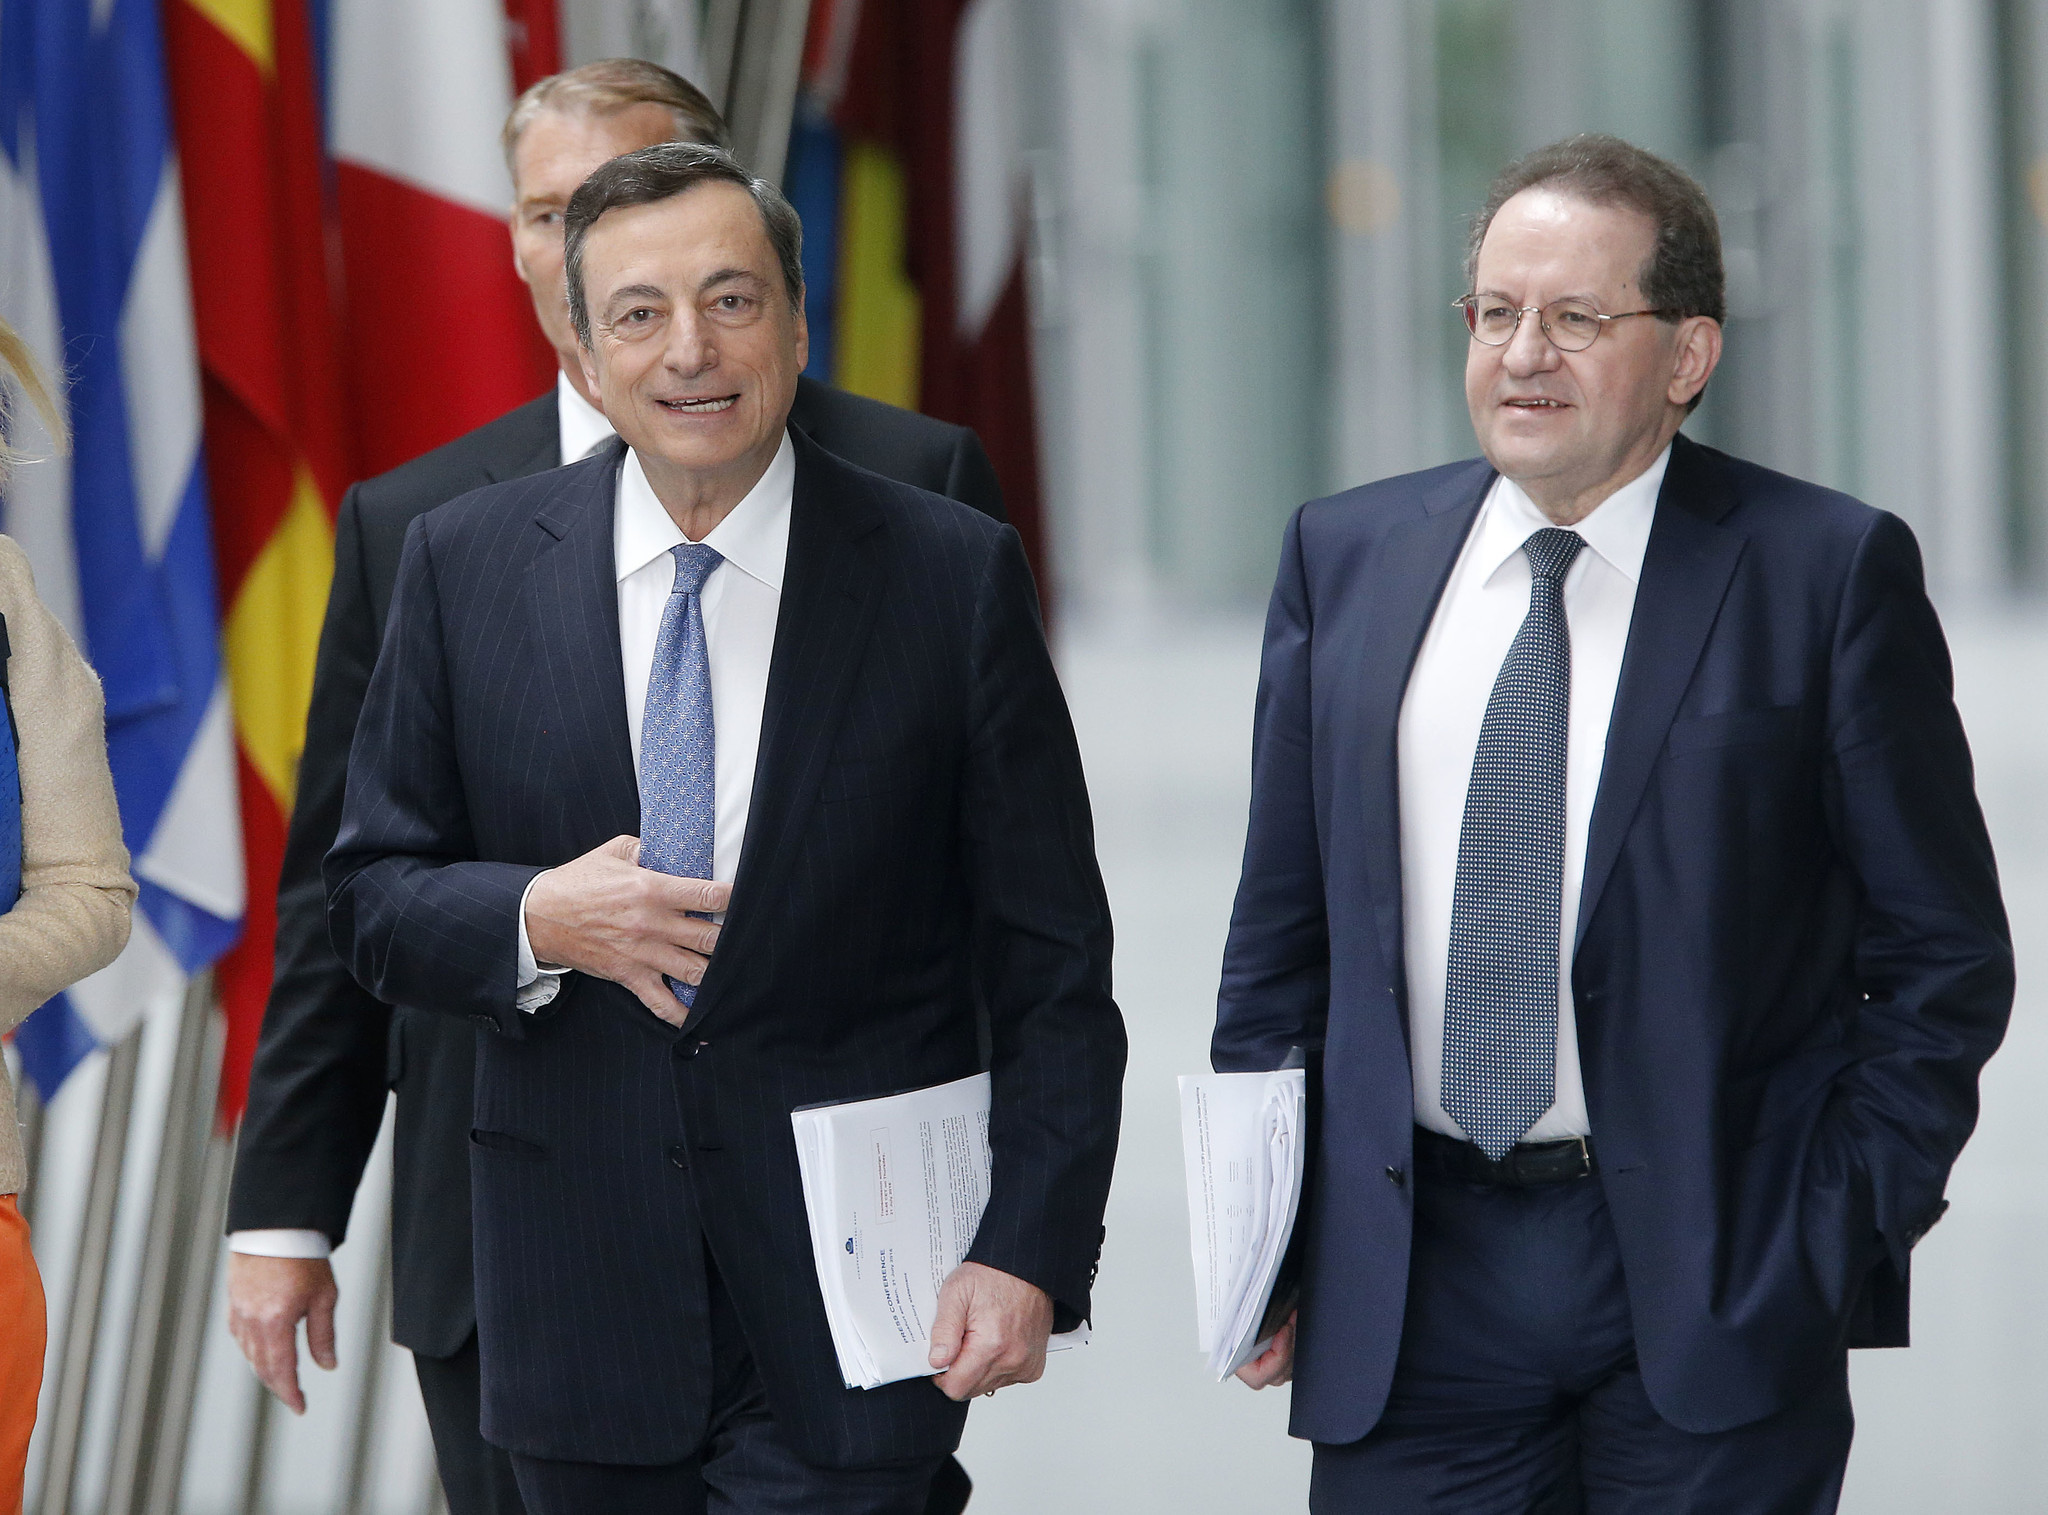 European Central Bank keeps interest rates at record low